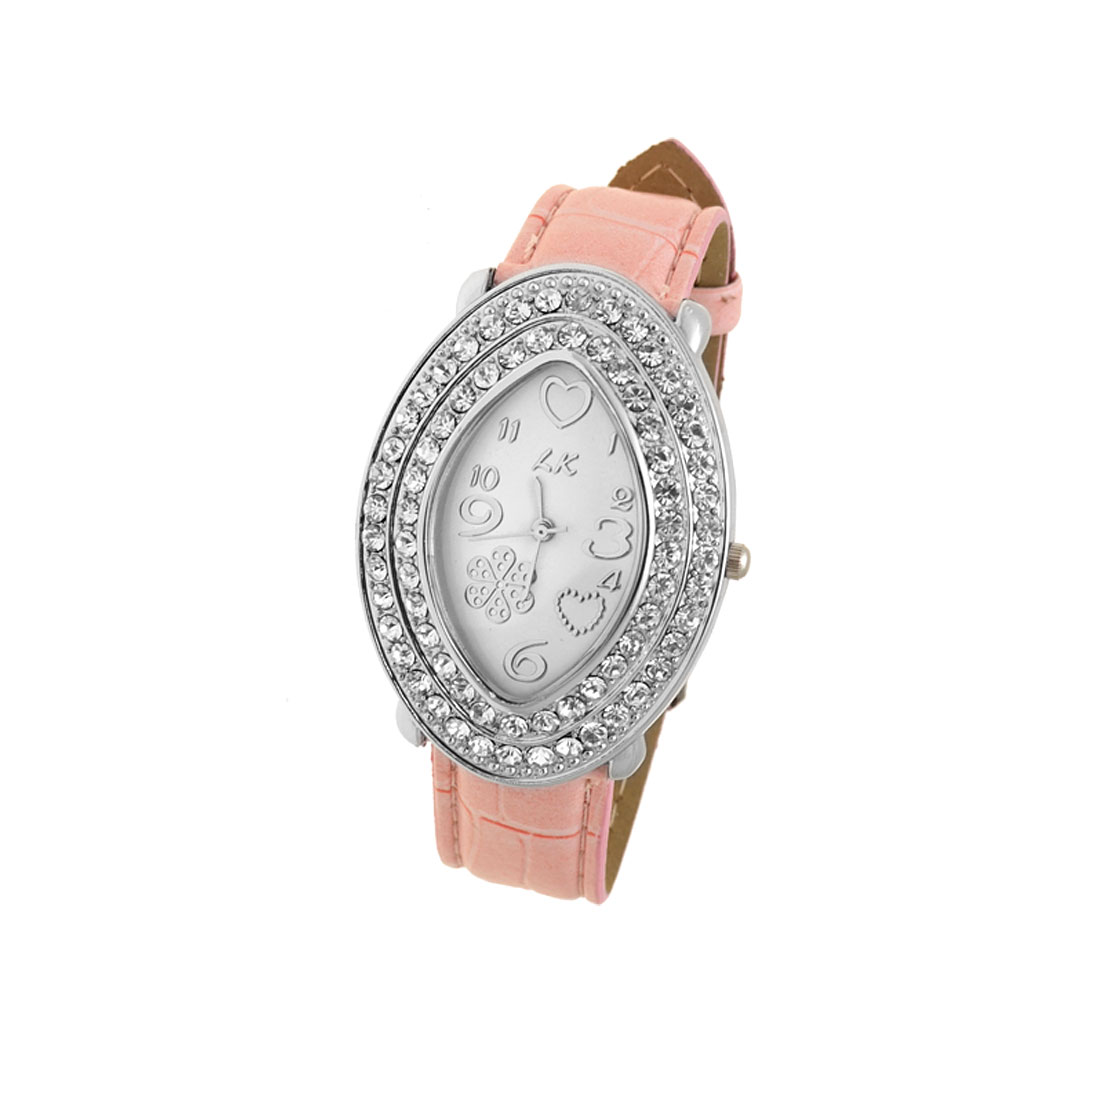 Fashion Oval Silvery Rhinestone Watch Case Pink Watchband Ladies' Wrist Watch